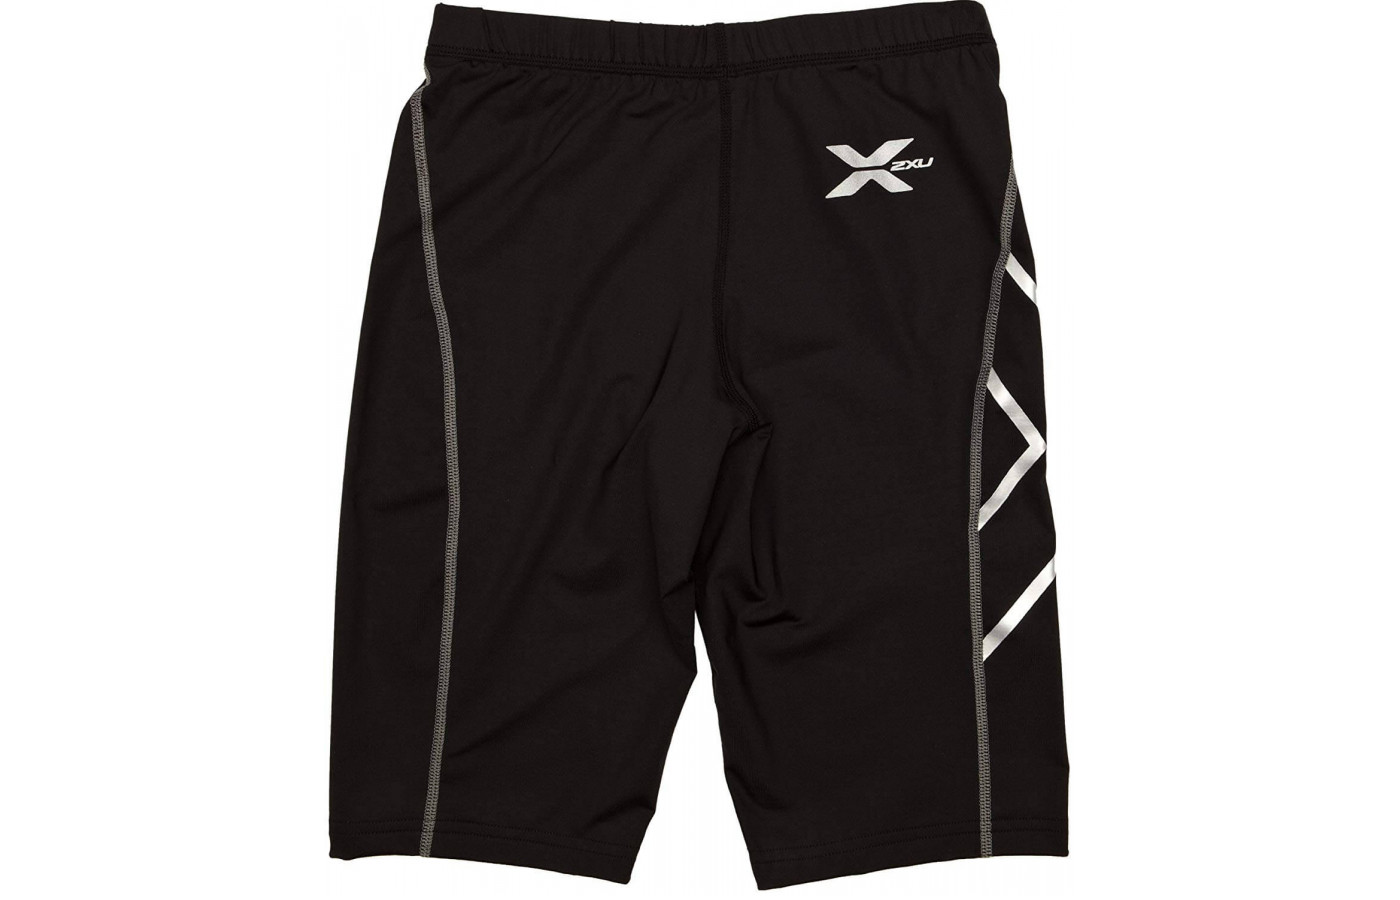 The 2XU Compression Shorts are made from a combination of nylon and elastane.